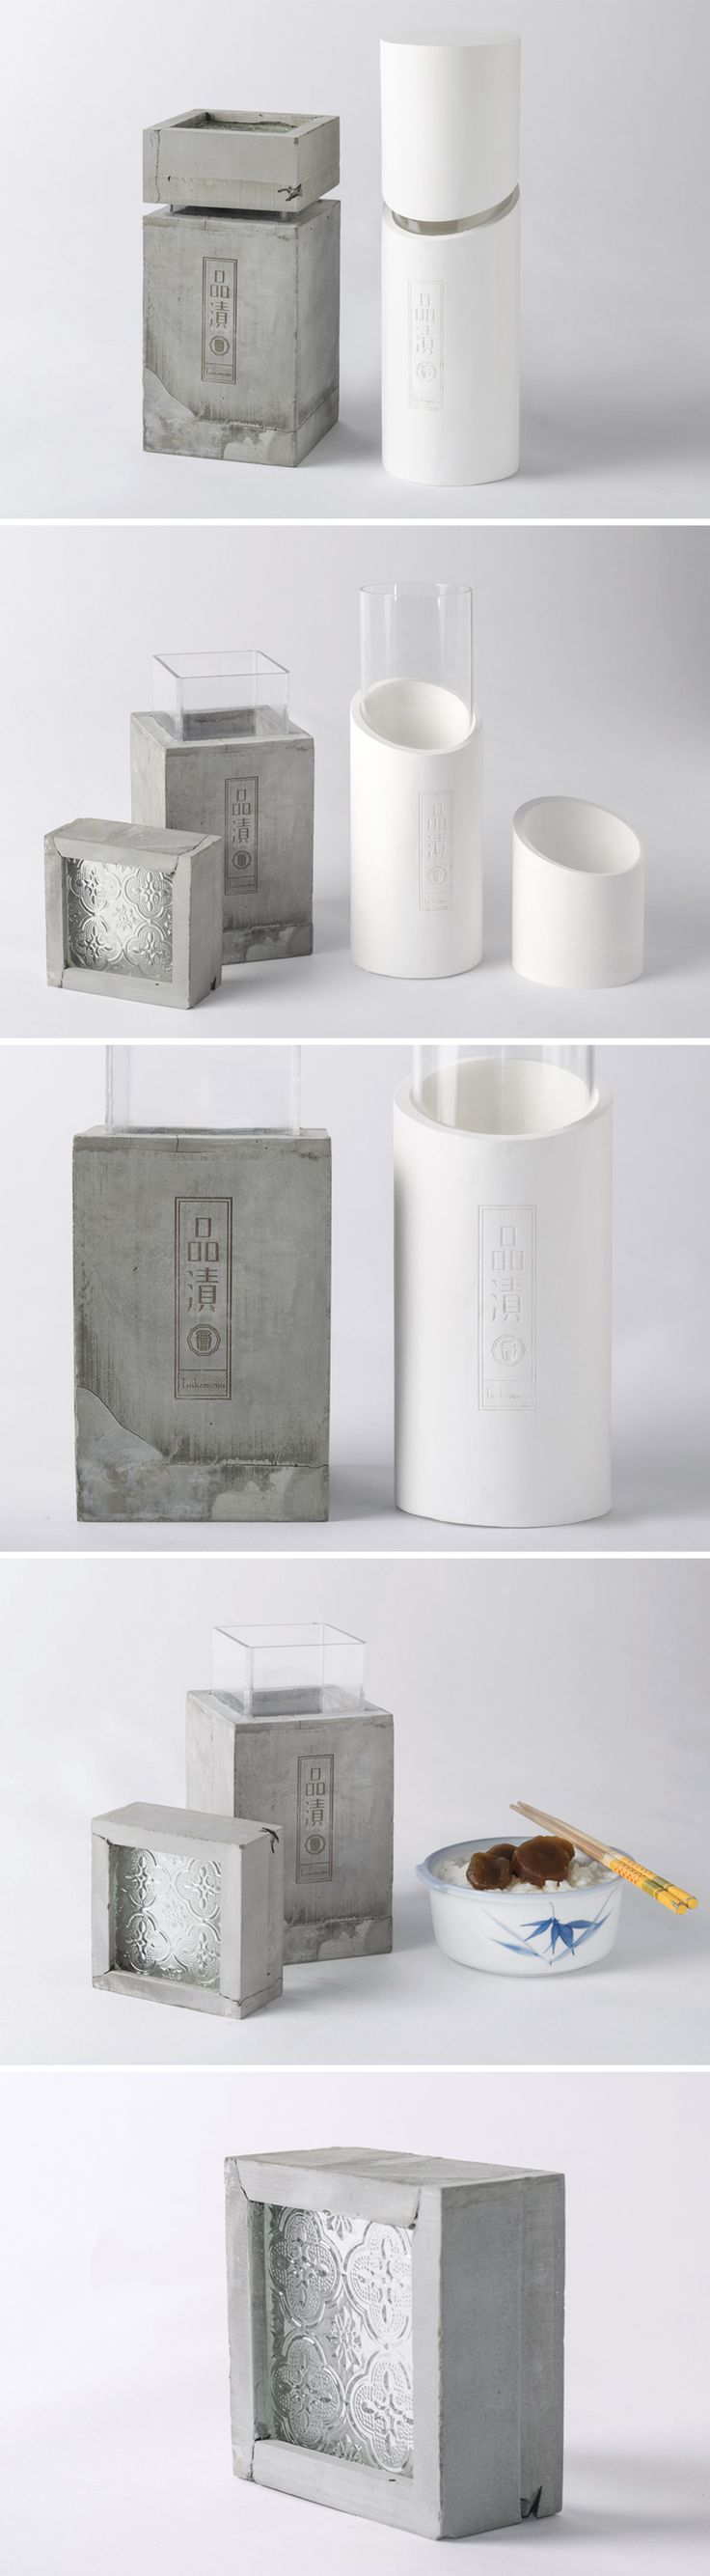 New material application of pickled product. The grey one is made of cement and the white one is plaster.